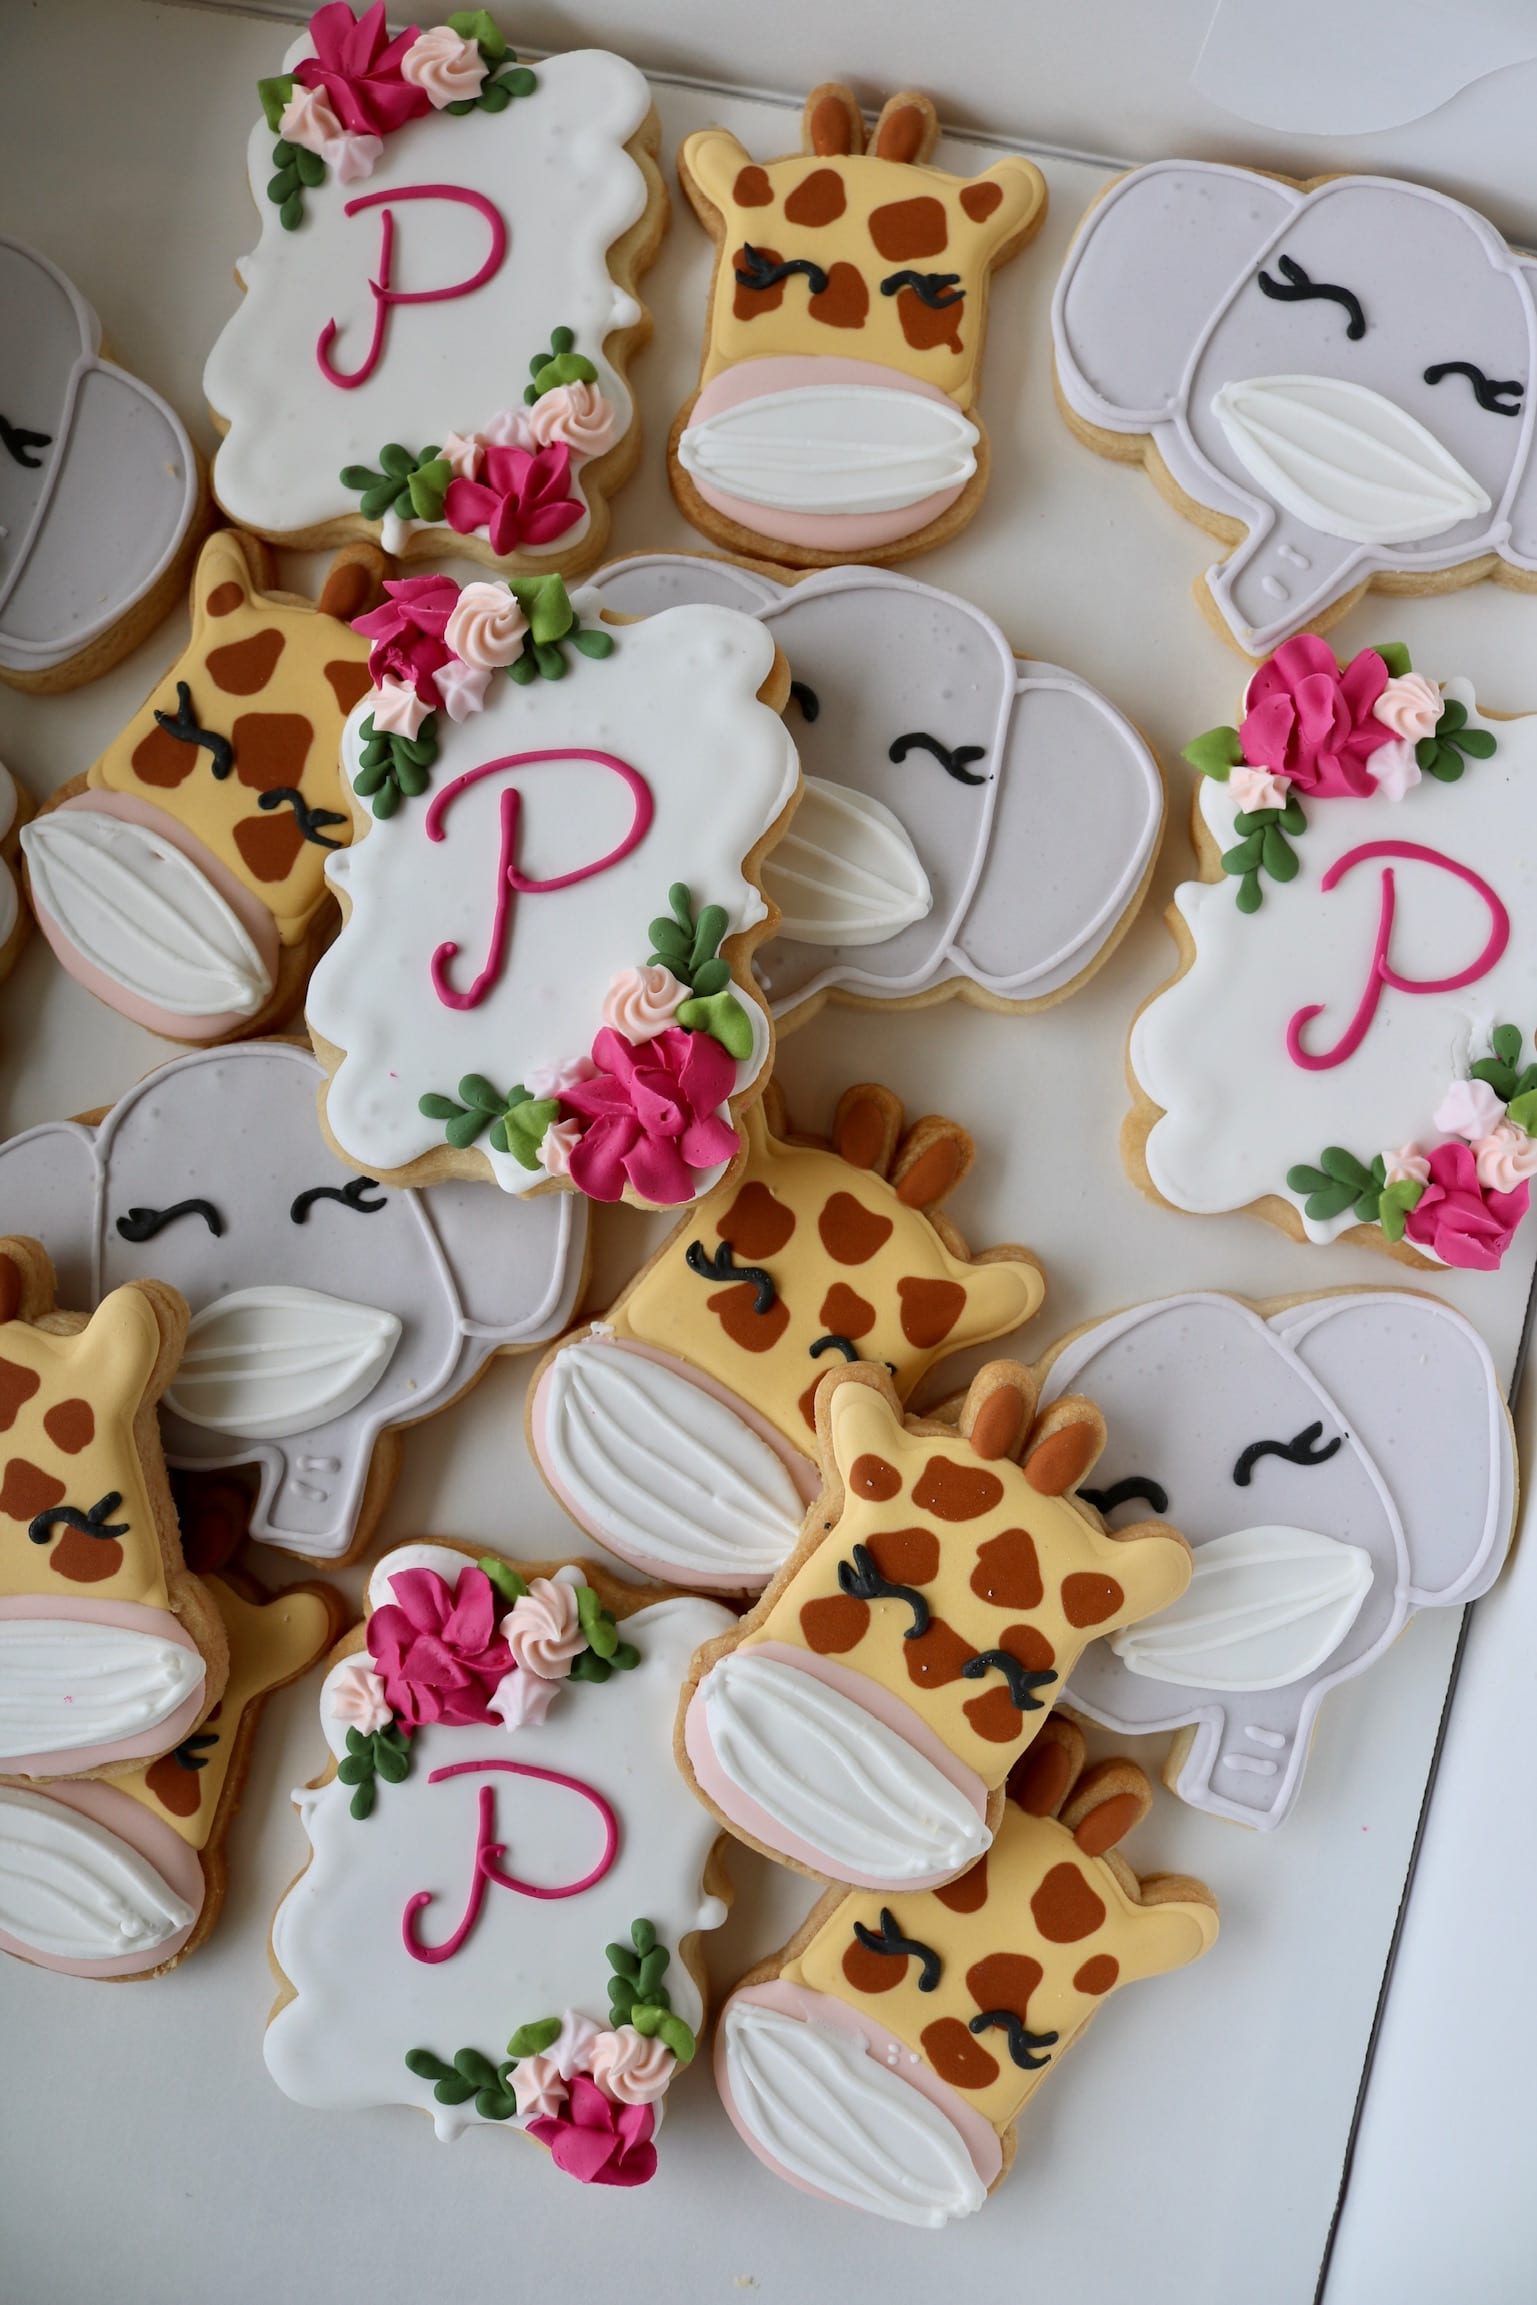 Giraffe and Elephant Cookies with Masks for Baby SHower | 3 Sweet Girls Cakery